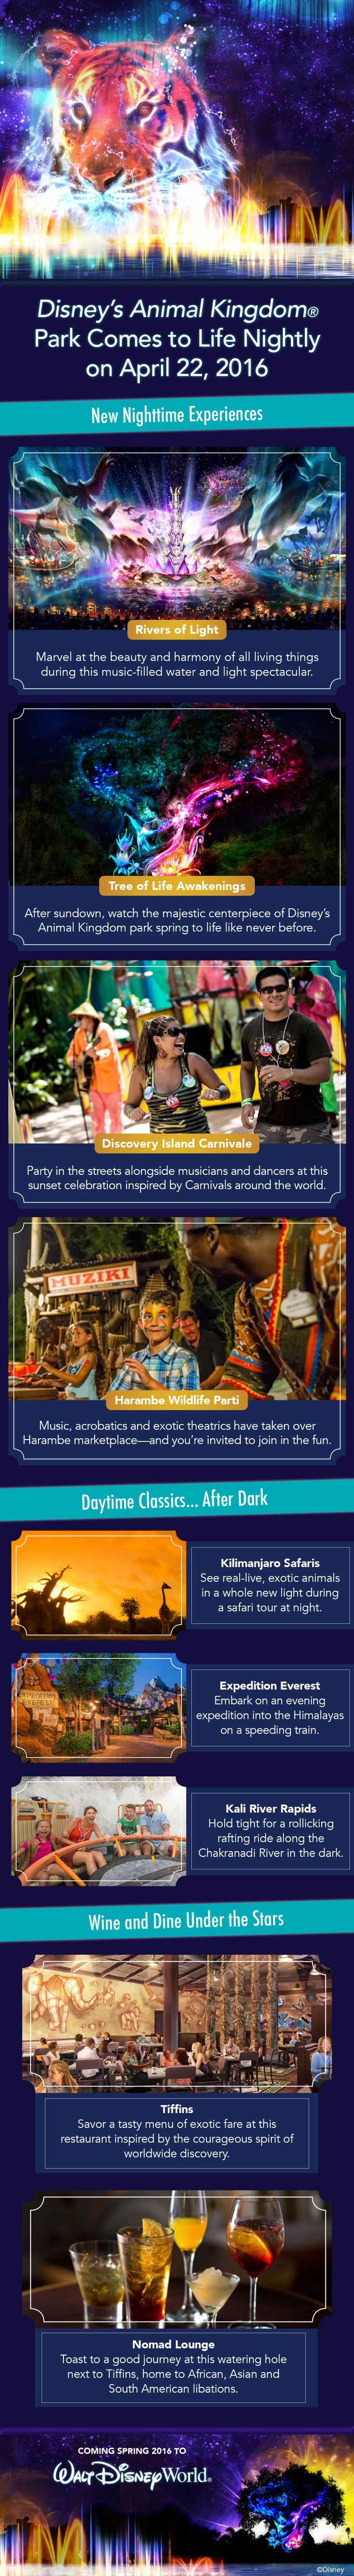 Disney's Animal Kingdom Park will come to life nightly beginning April 22, 2016! From new nighttime experiences like Rivers of Light and Tree of Life Awakenings to experiencing daytime classics after dark, here's a look at the exciting new offerings you'll be able to